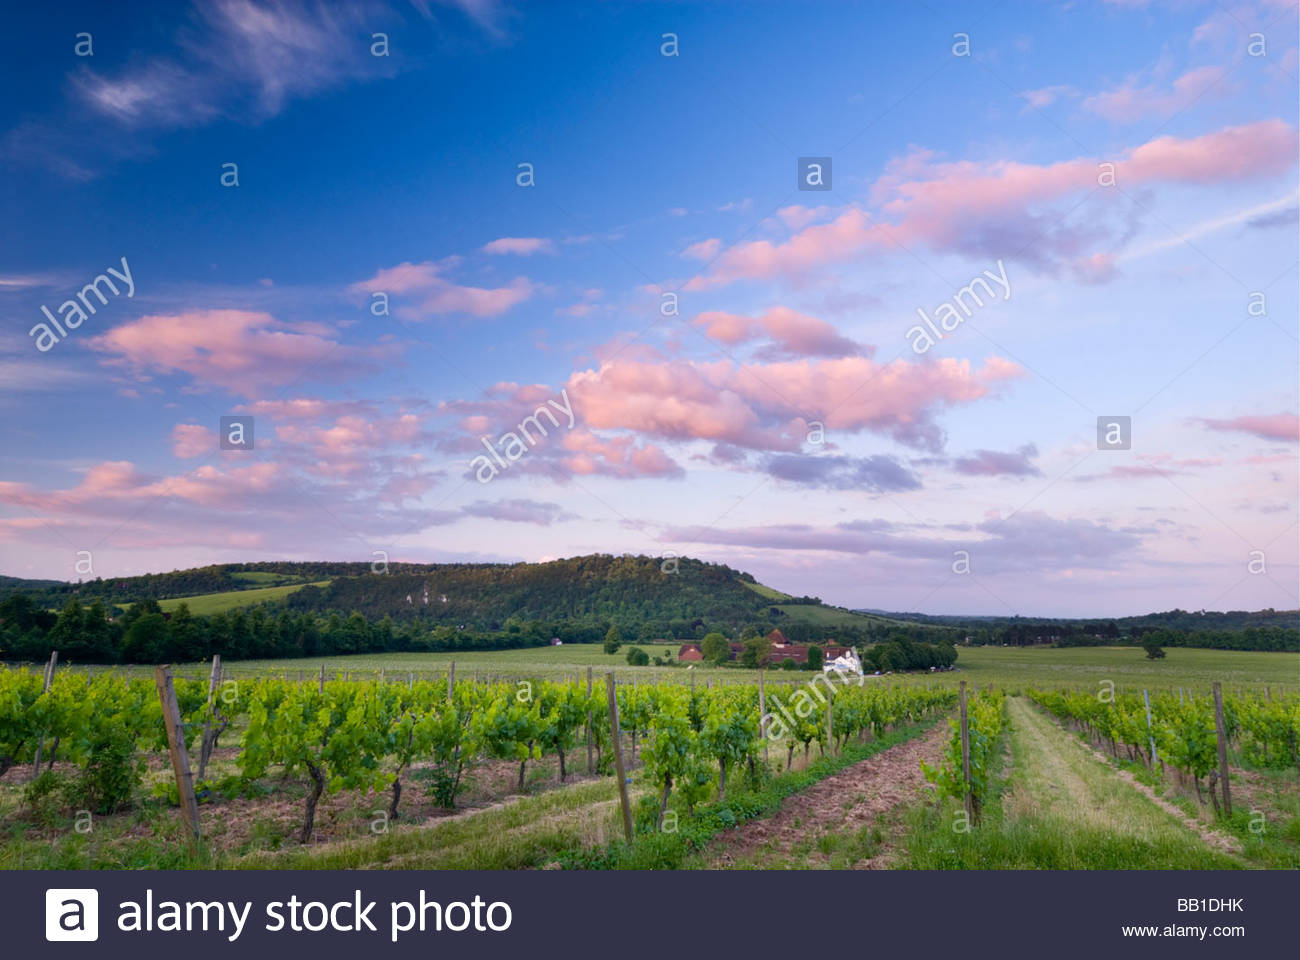 Denbies Weinberg und Wine Estate, Dorking, Surrey, England. Stockbild